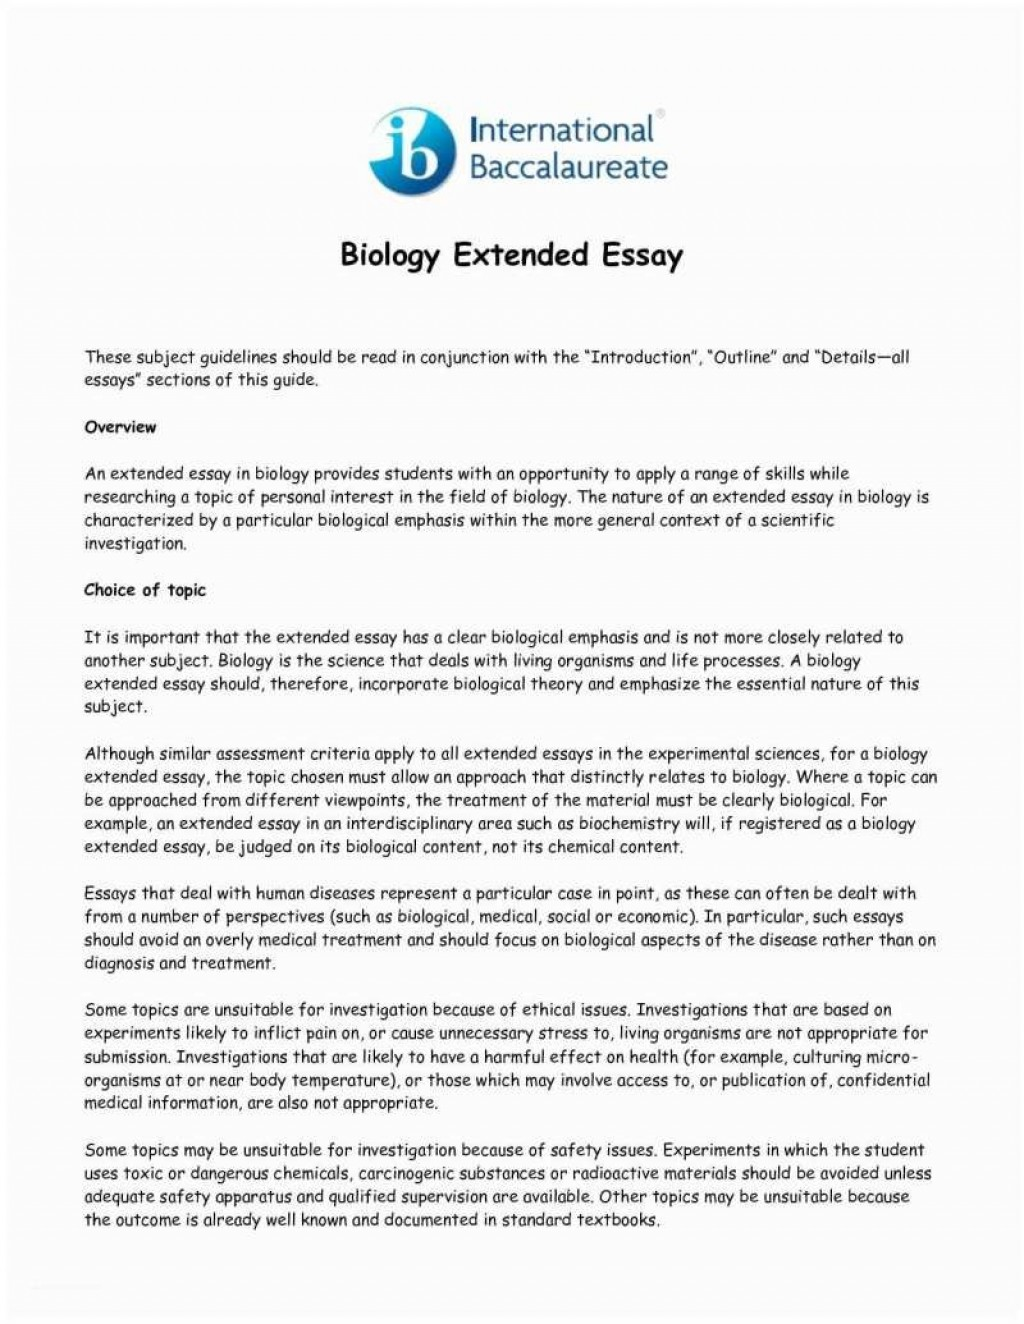 004 Extended Essay Sample Example History Excellent Samples Business And Management Ib English Research Questions Large